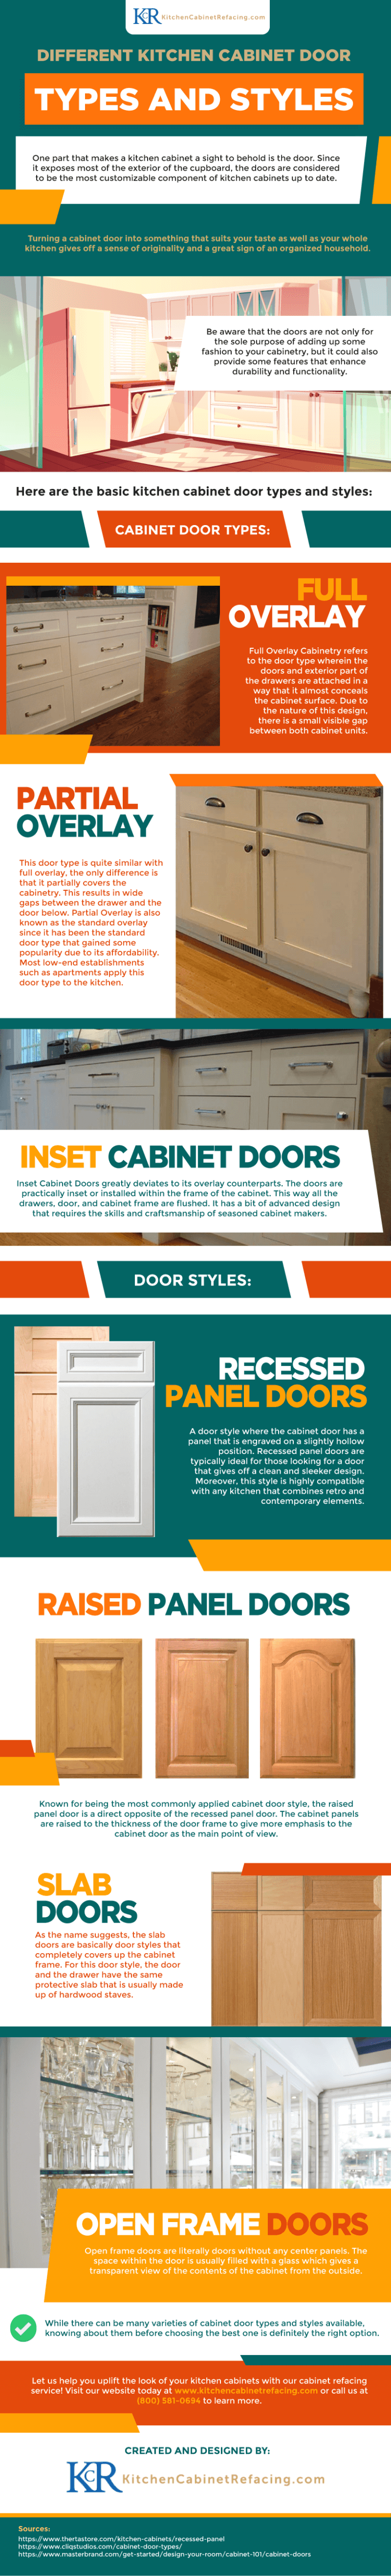 Different-Kitchen-Cabinet-Door-Types-and-Styles